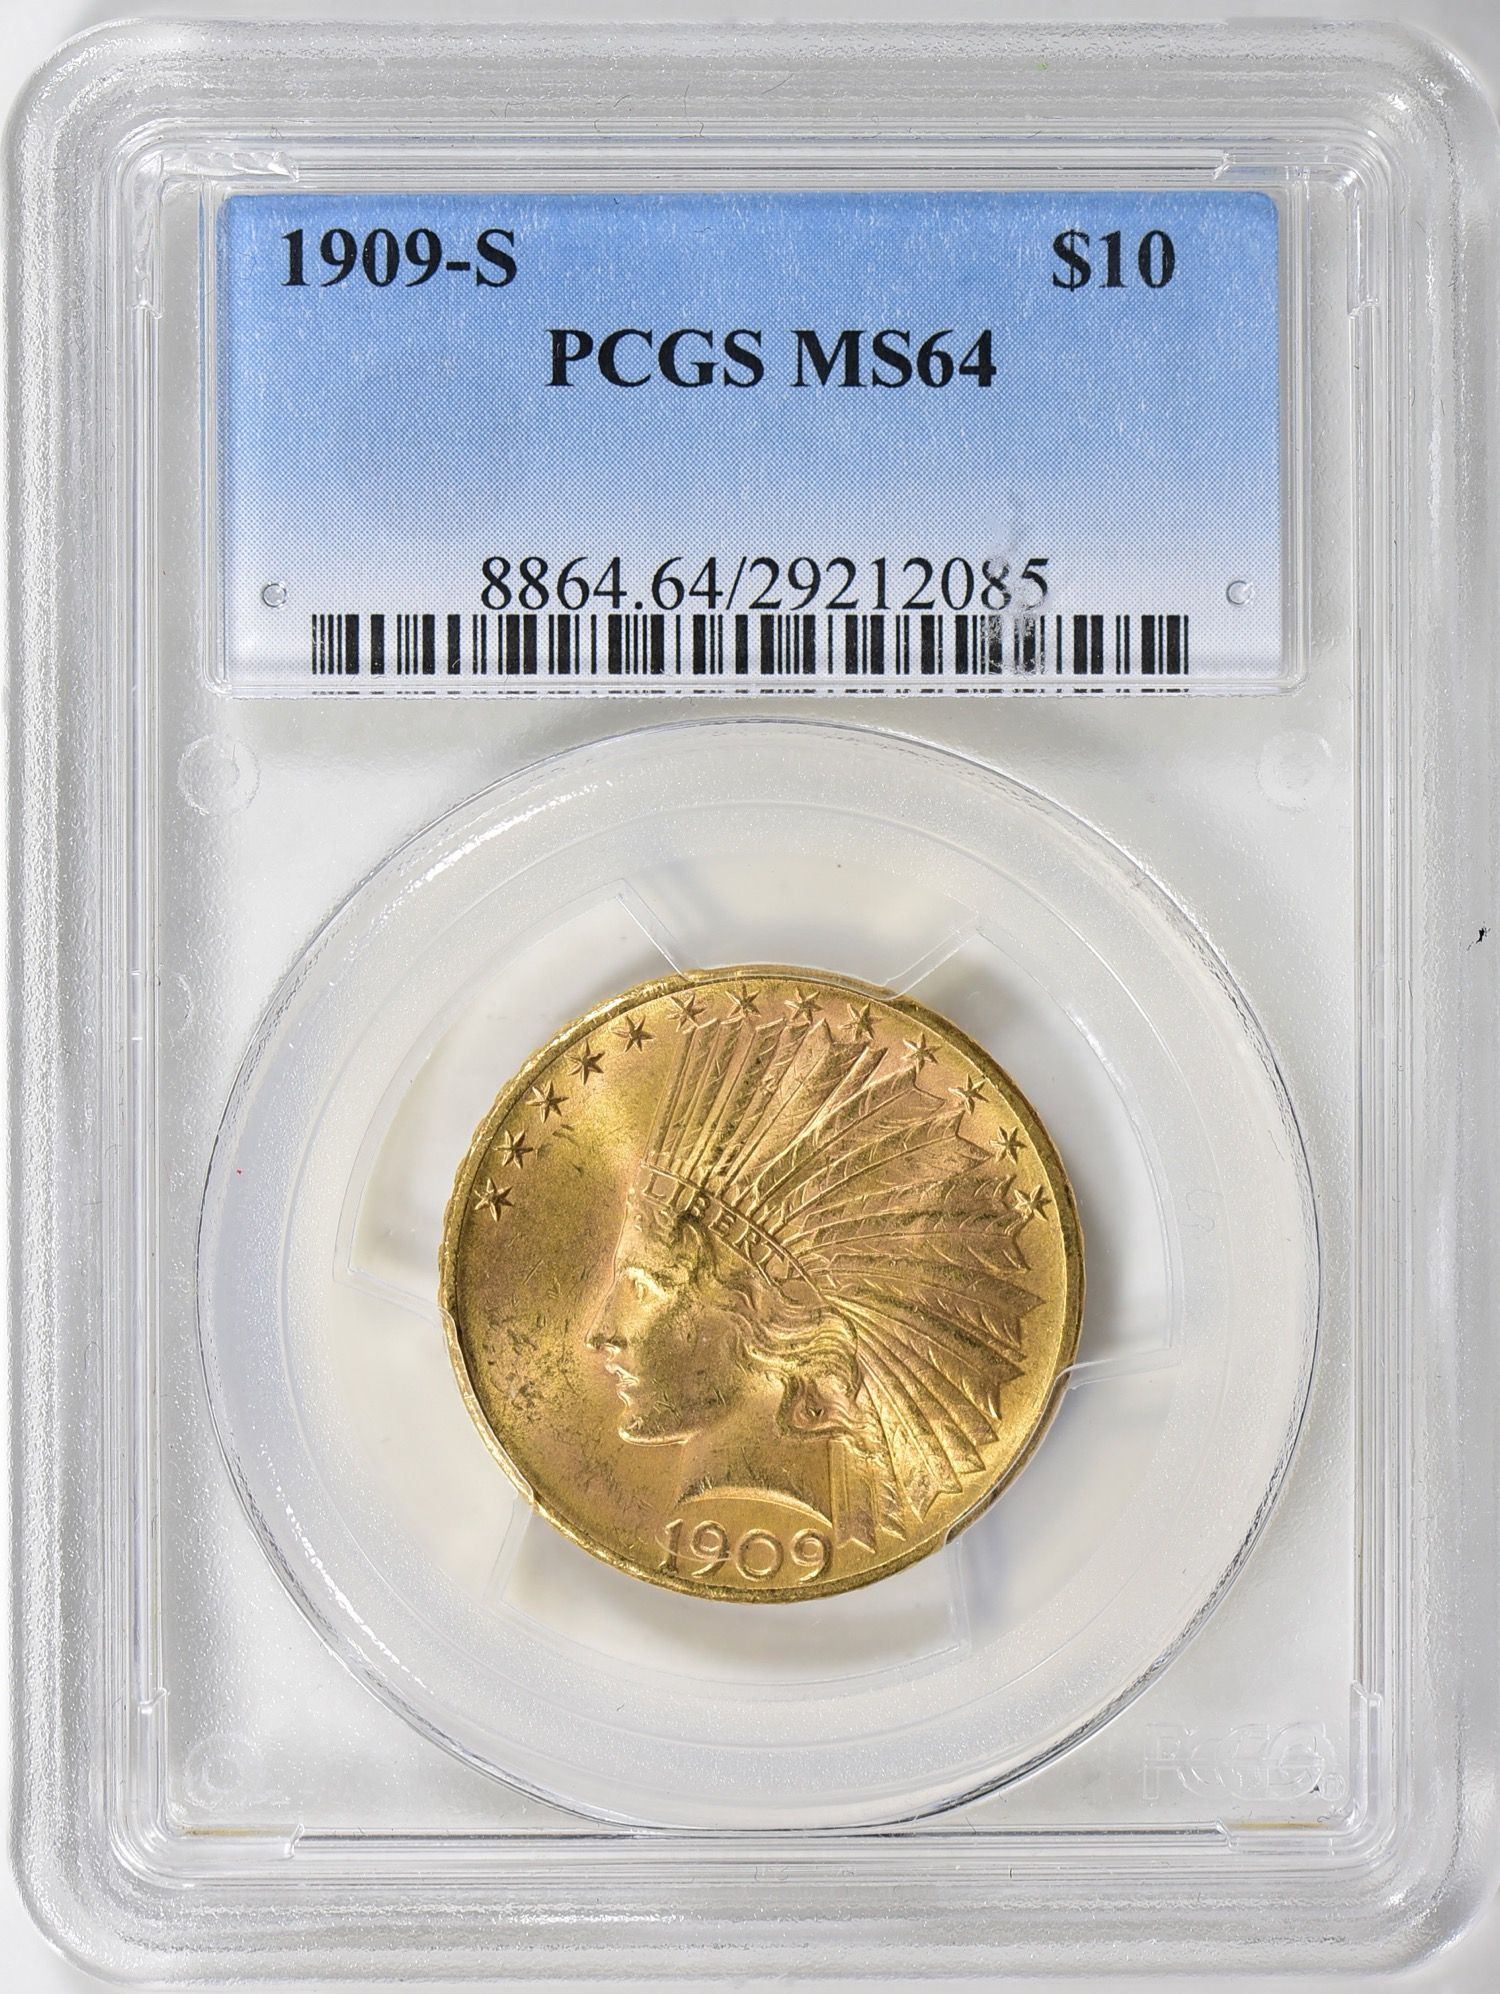 Pin By Ron Miller On Mens Silver Jewelry In 2020 Coin Auctions Mens Silver Jewelry Pcgs